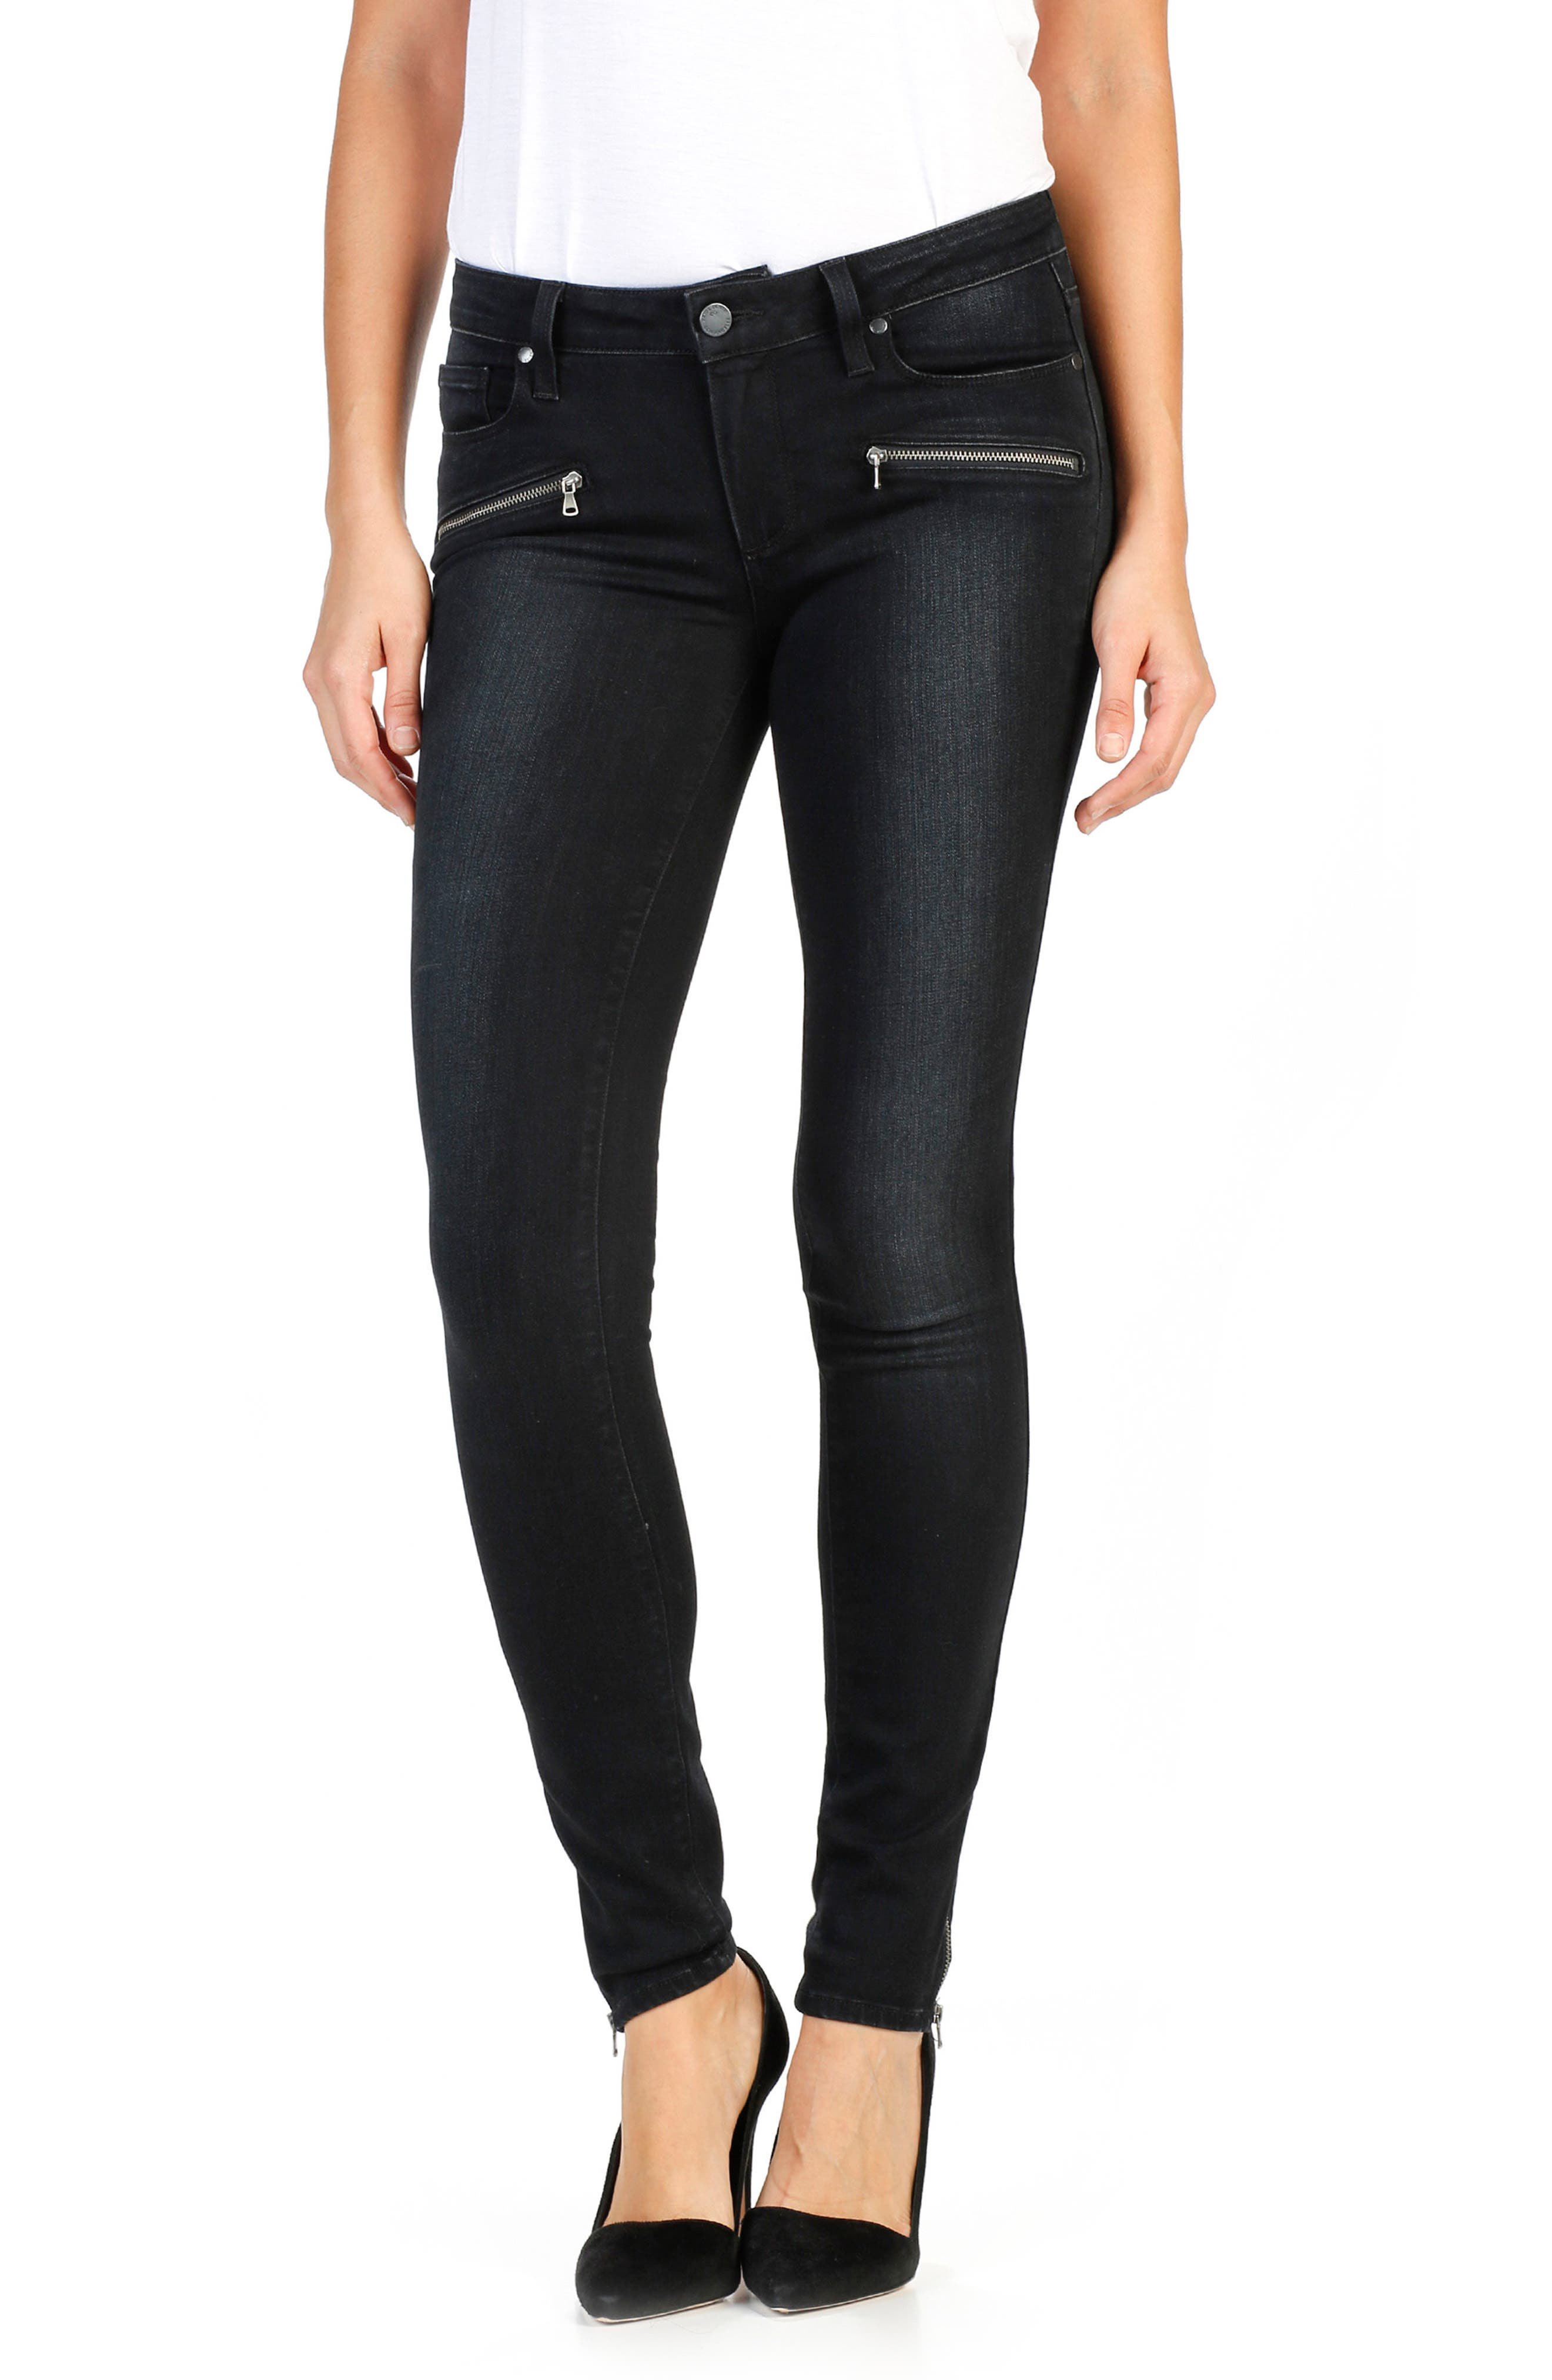 Transcend - Jill Zip Ultra Skinny Jeans,                         Main,                         color, Cassidy No Whiskers